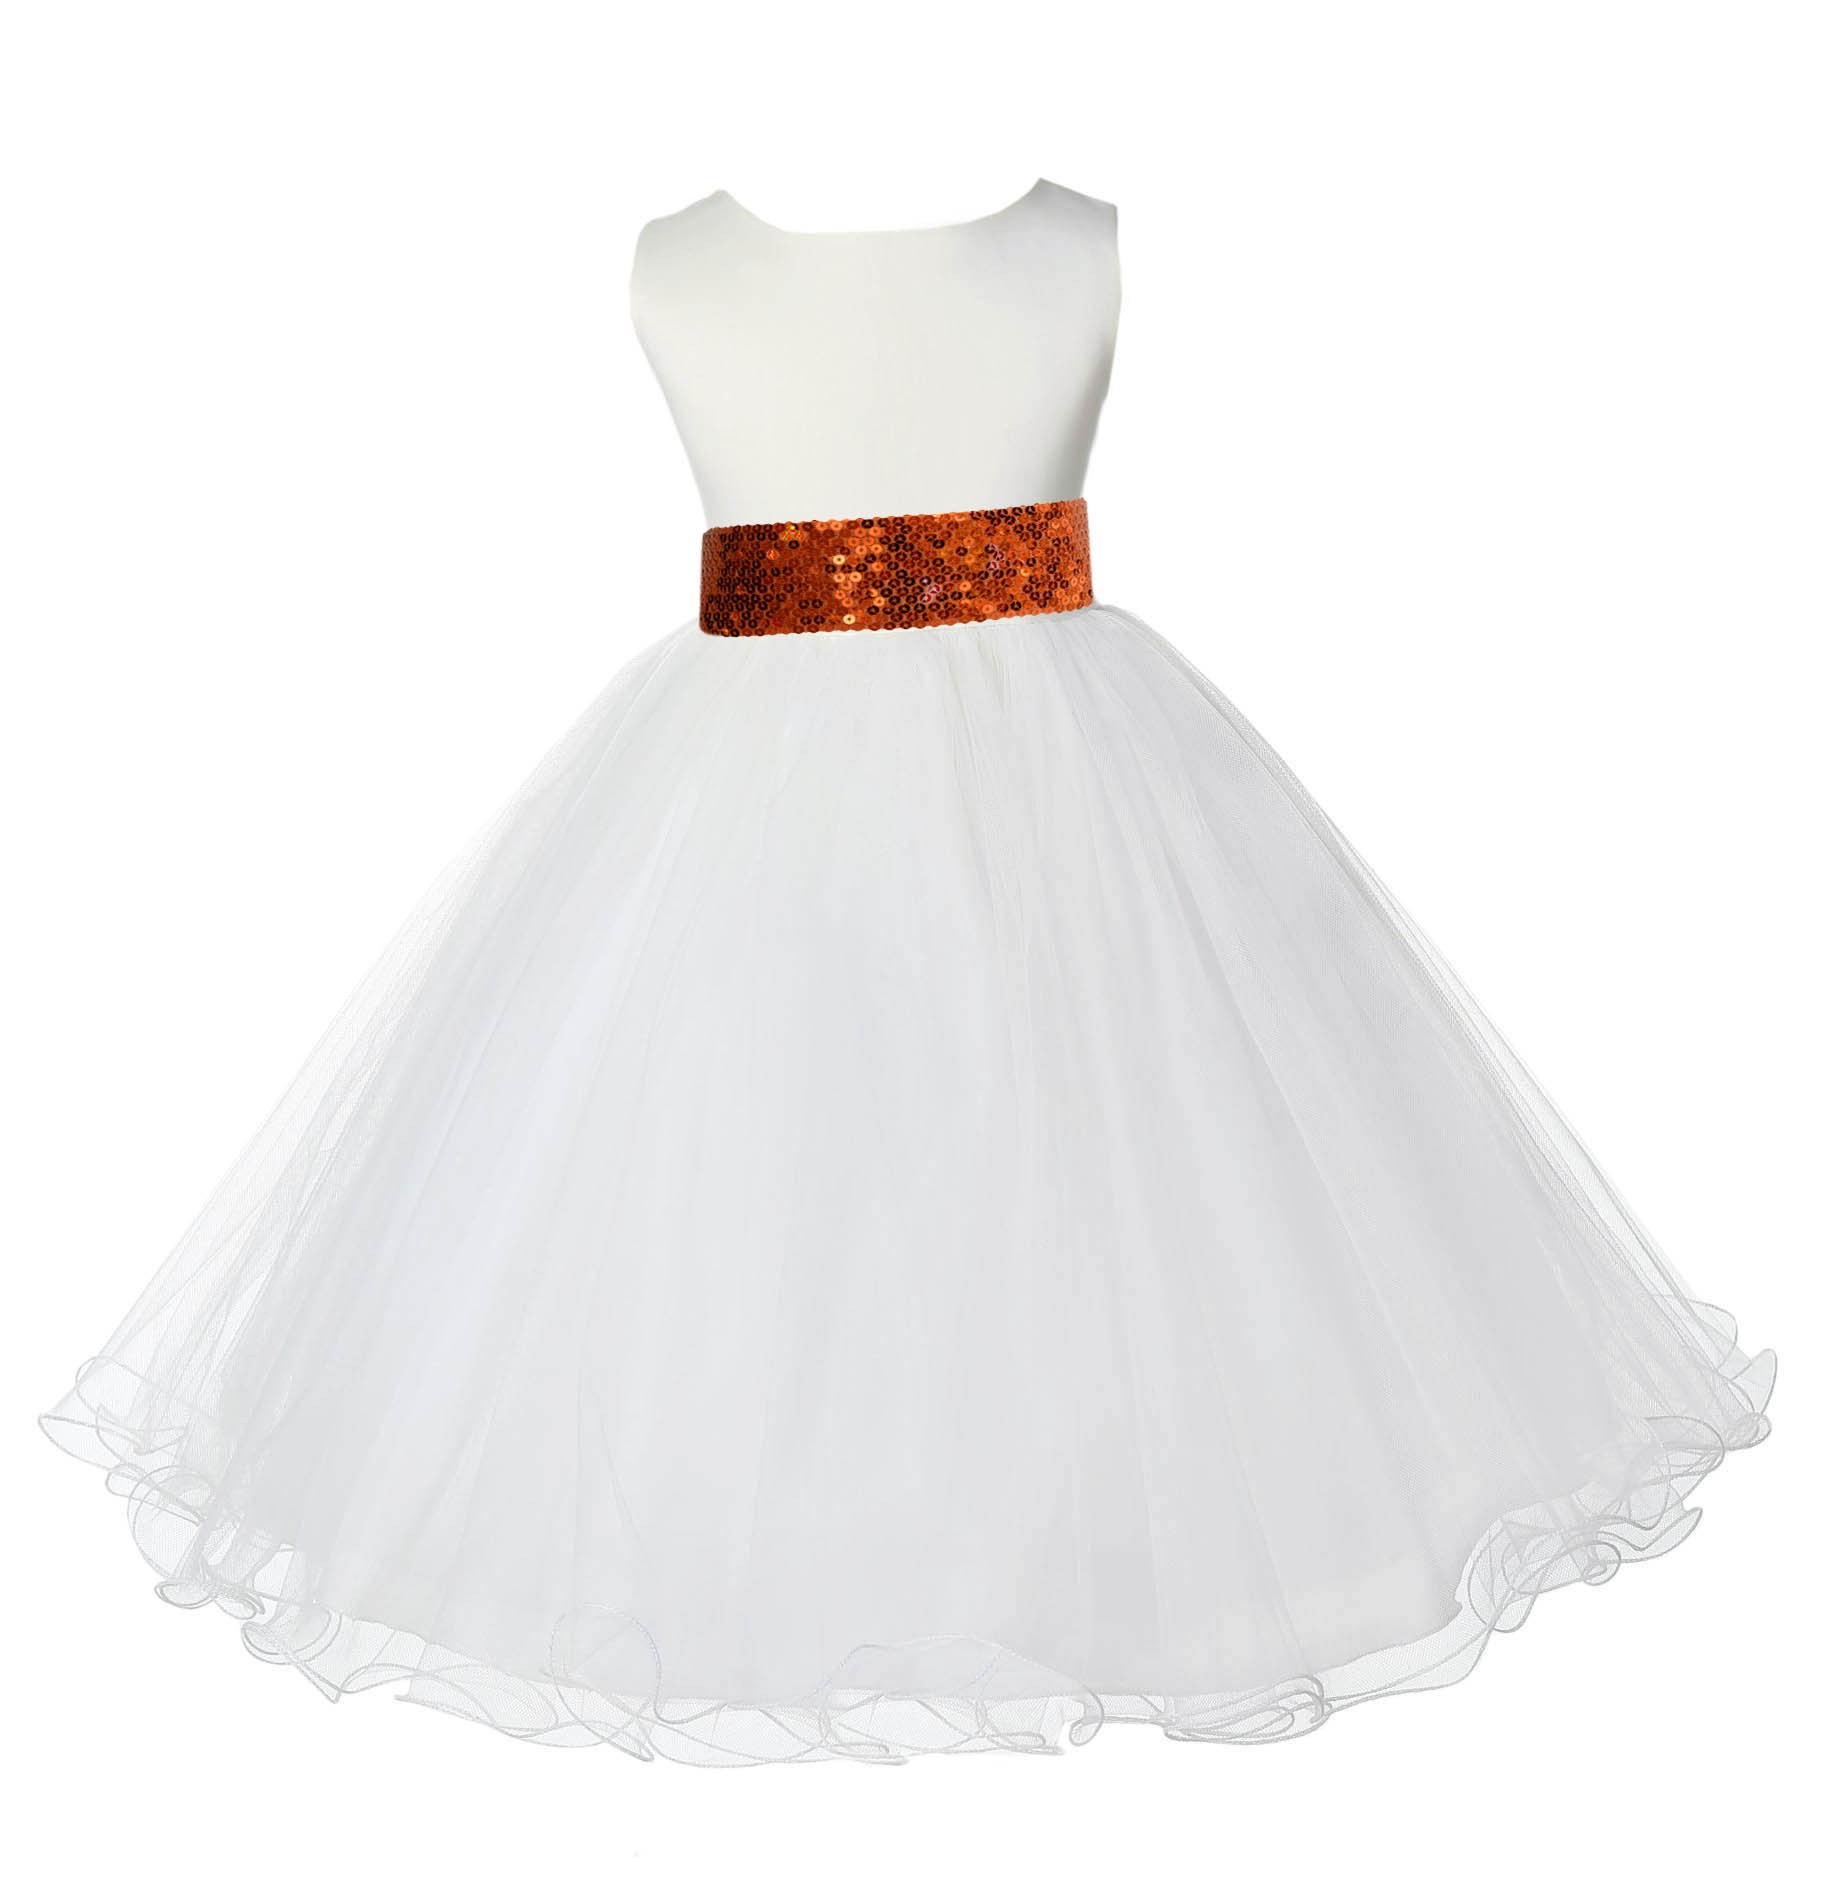 Ivory Tulle Rattail Edge Orange Sequin Sash Flower Girl Dress 829mh